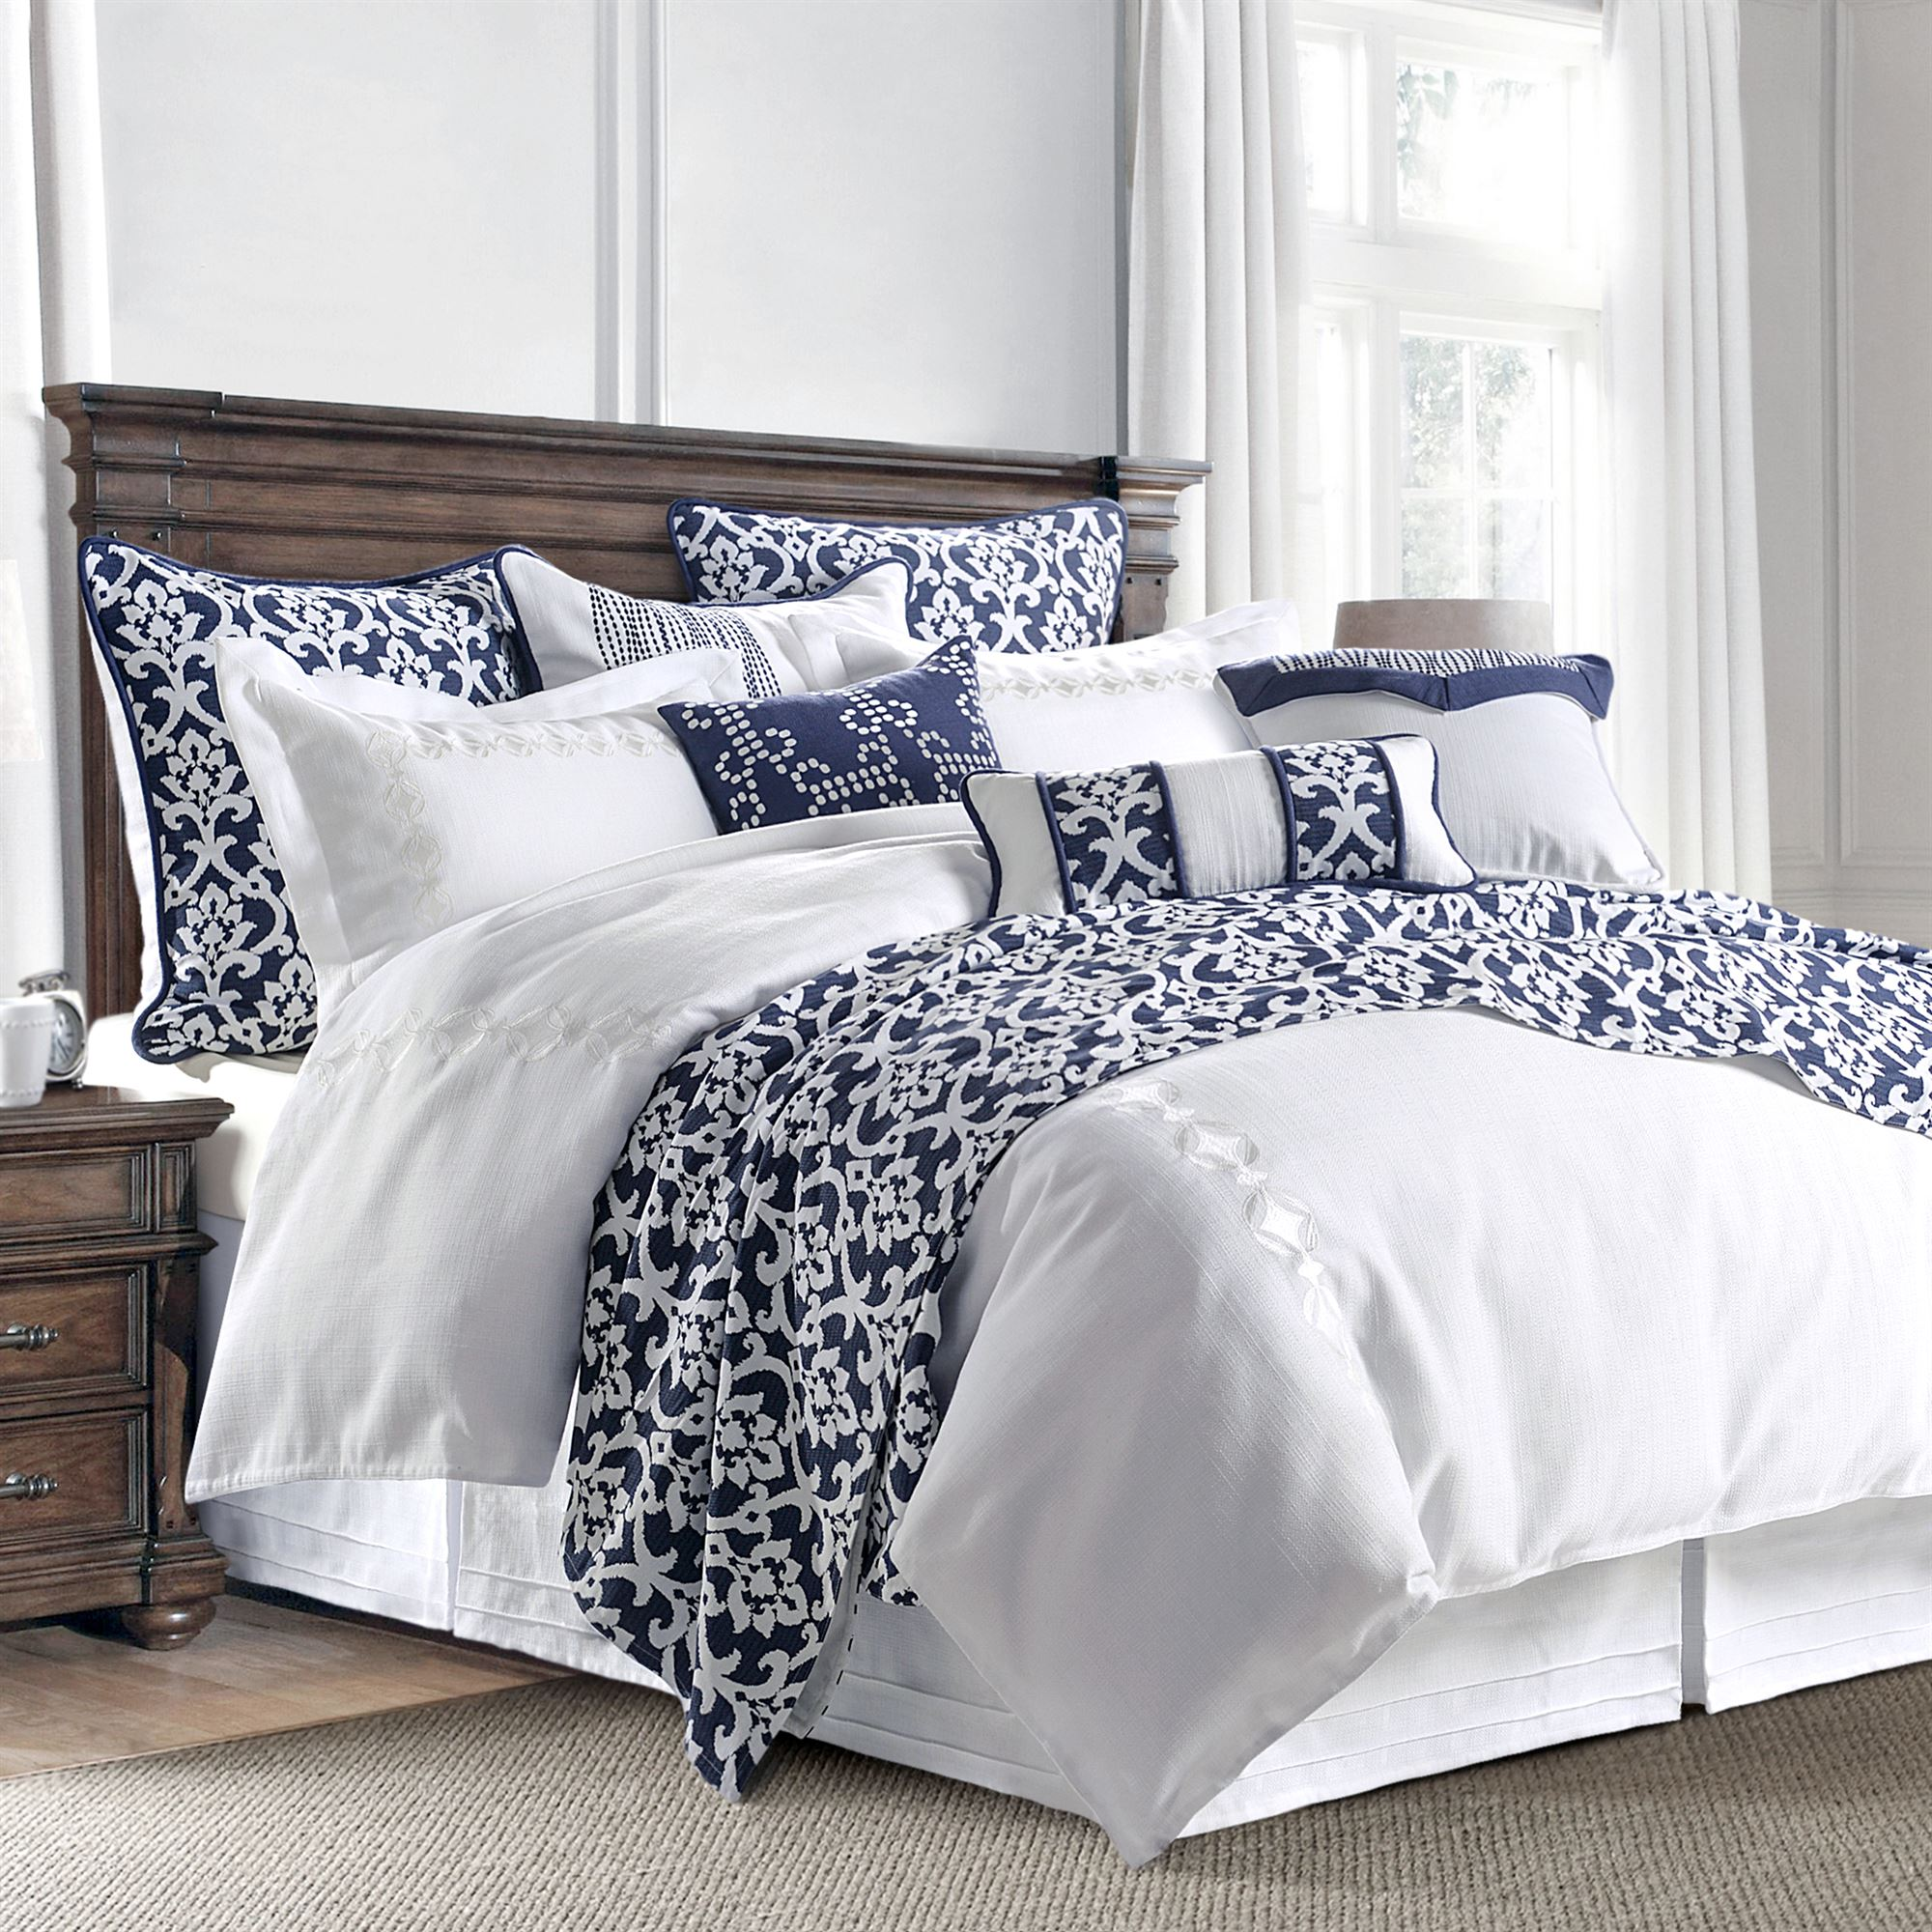 comforter sets bedroom of bedding size walmart twin and target white black full set